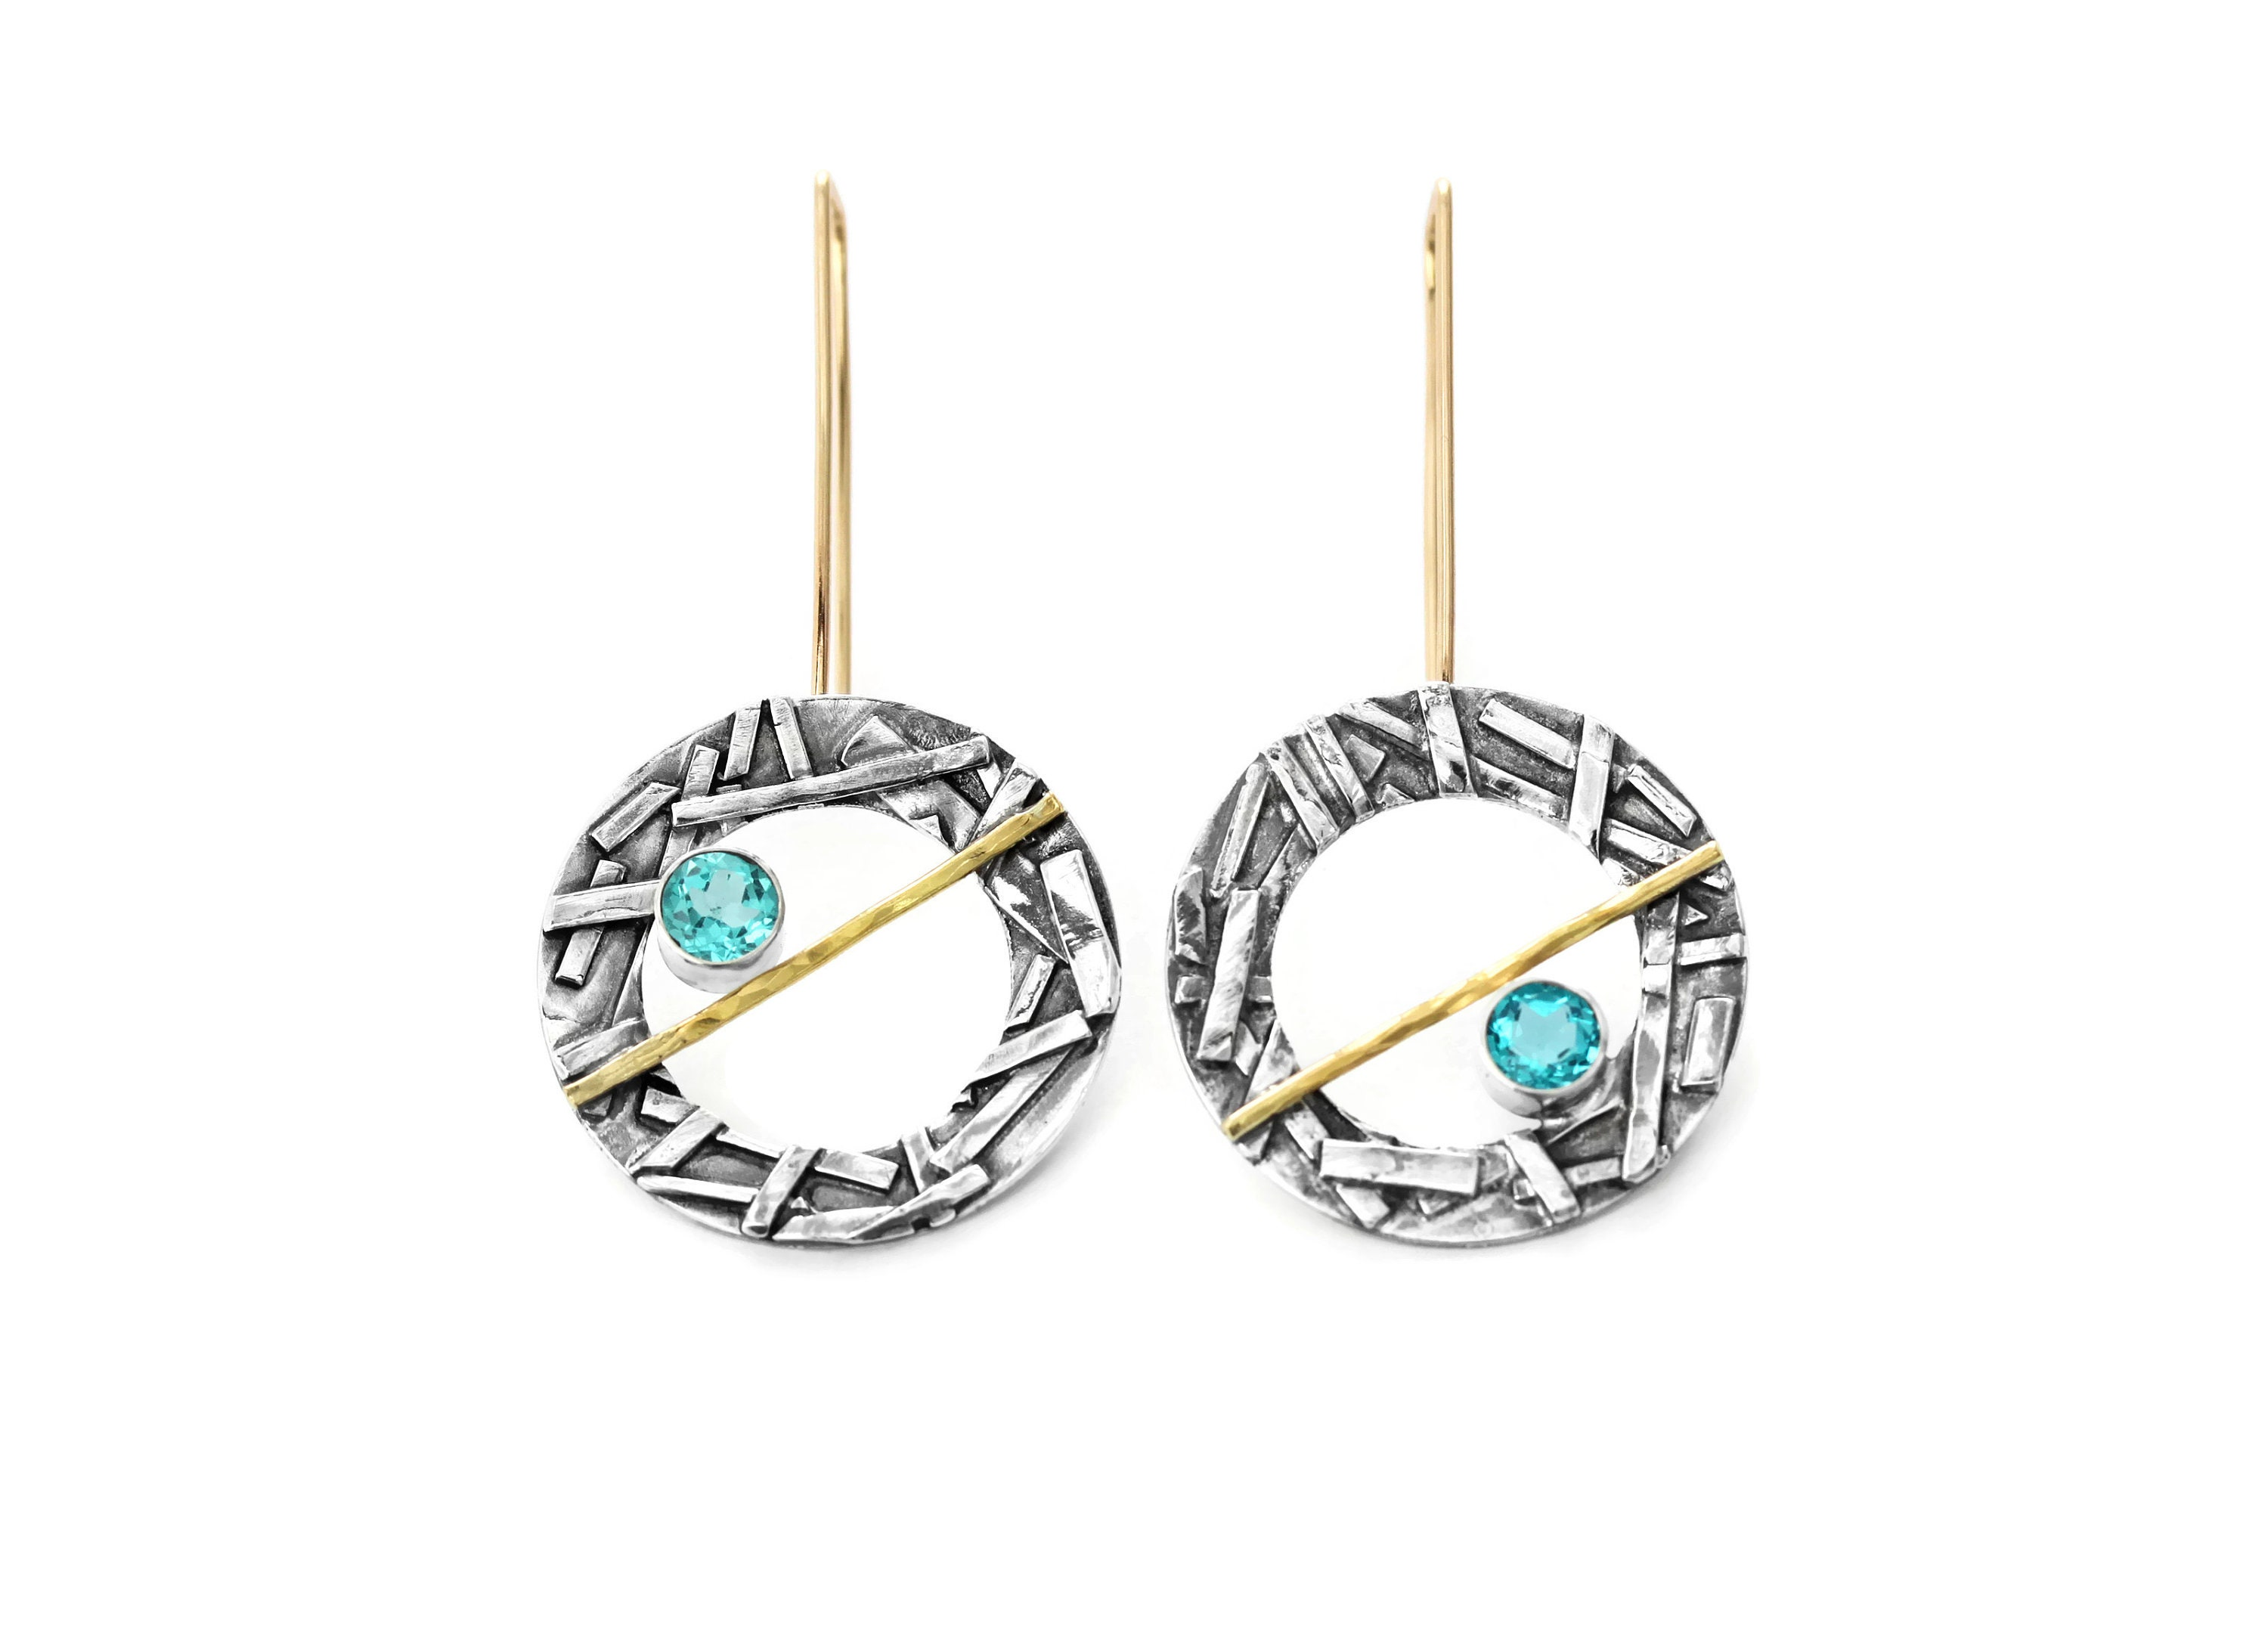 kbeau apatite collections ssapatiteearringsb jewelry earrings